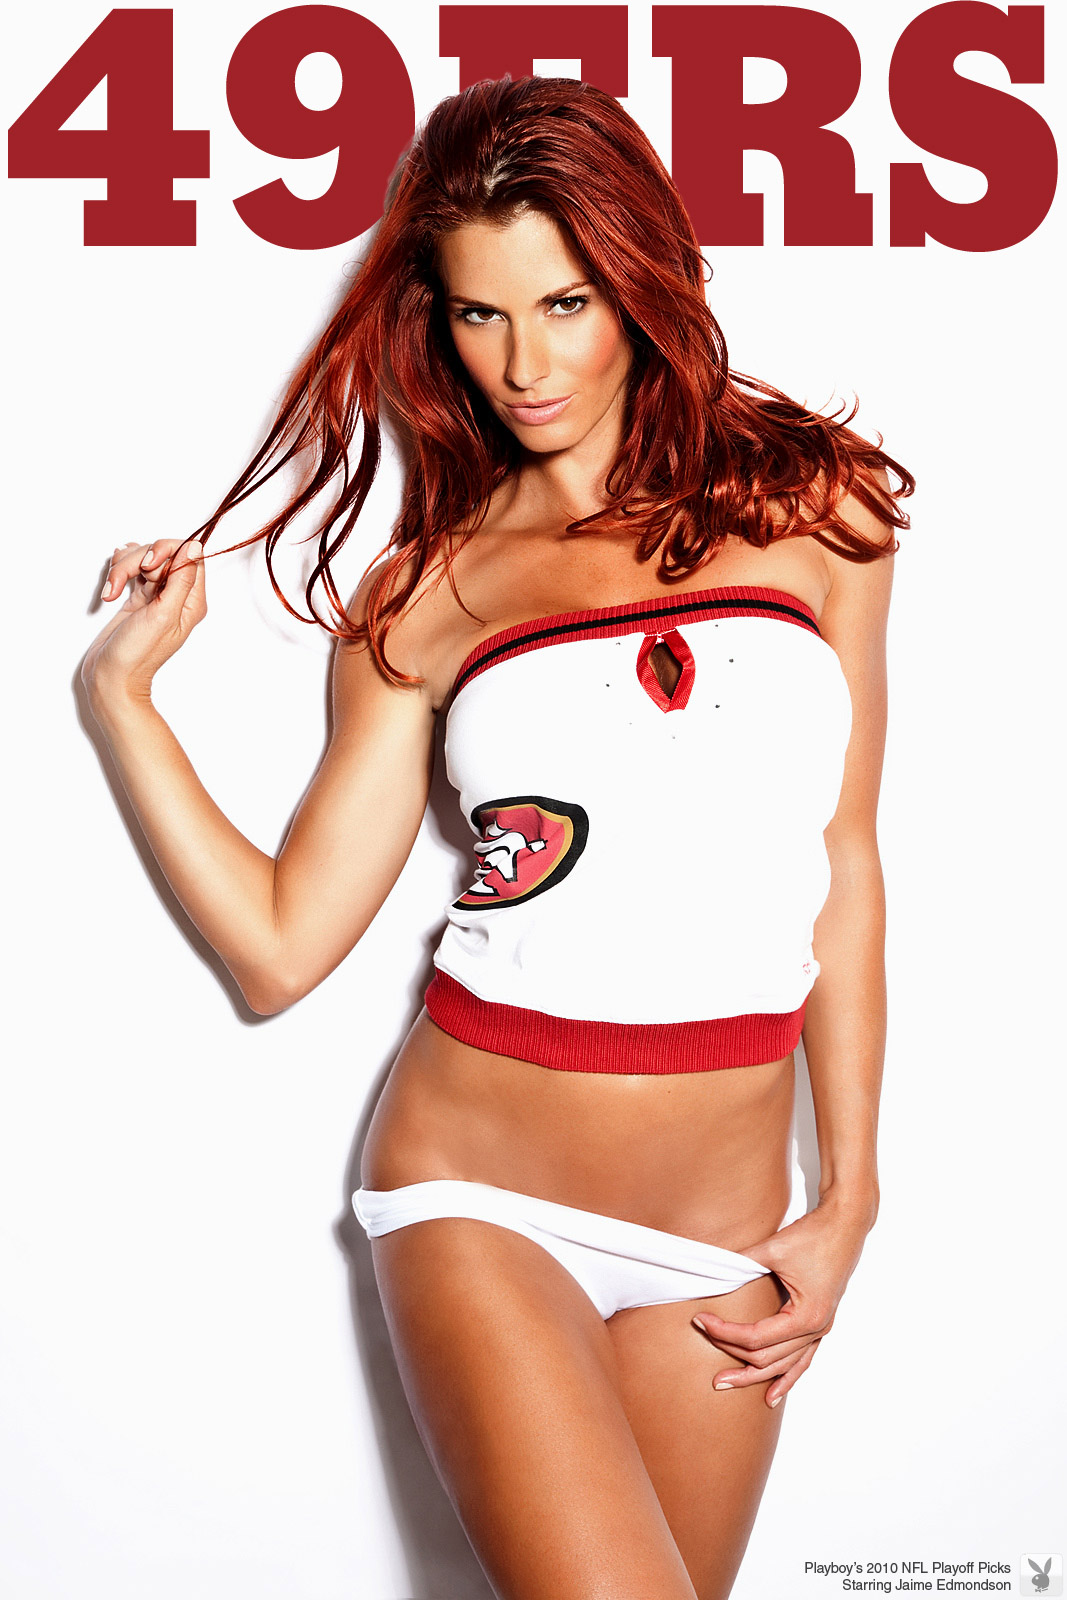 49ers Girl To Girl